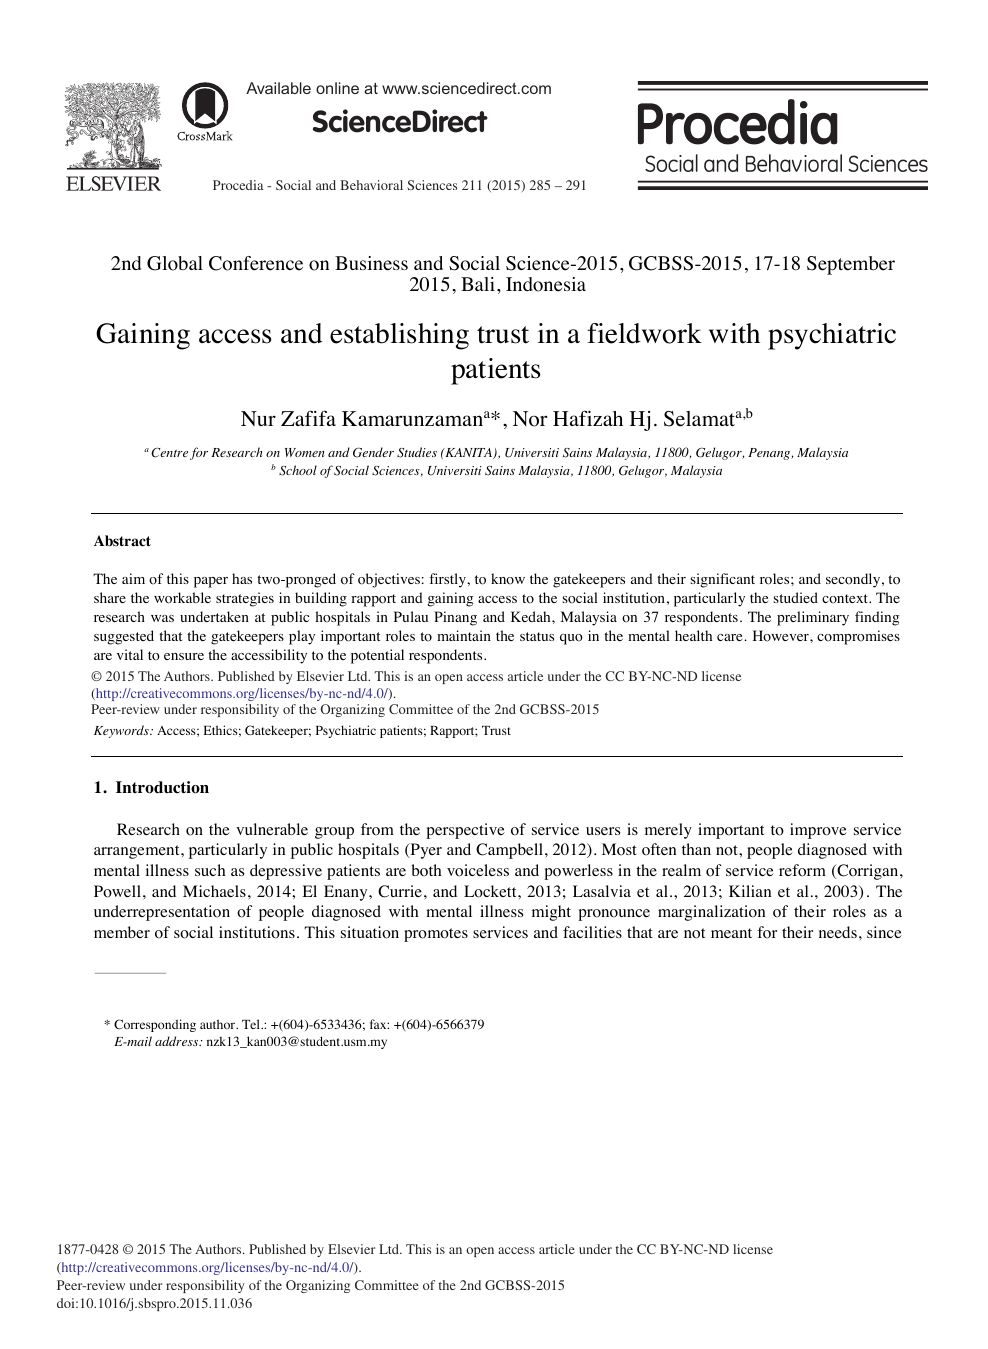 Gaining Access And Establishing Trust In A Fieldwork With Psychiatric Patients Topic Of Research Paper In Economics And Business Download Scholarly Article Pdf And Read For Free On Cyberleninka Open Science